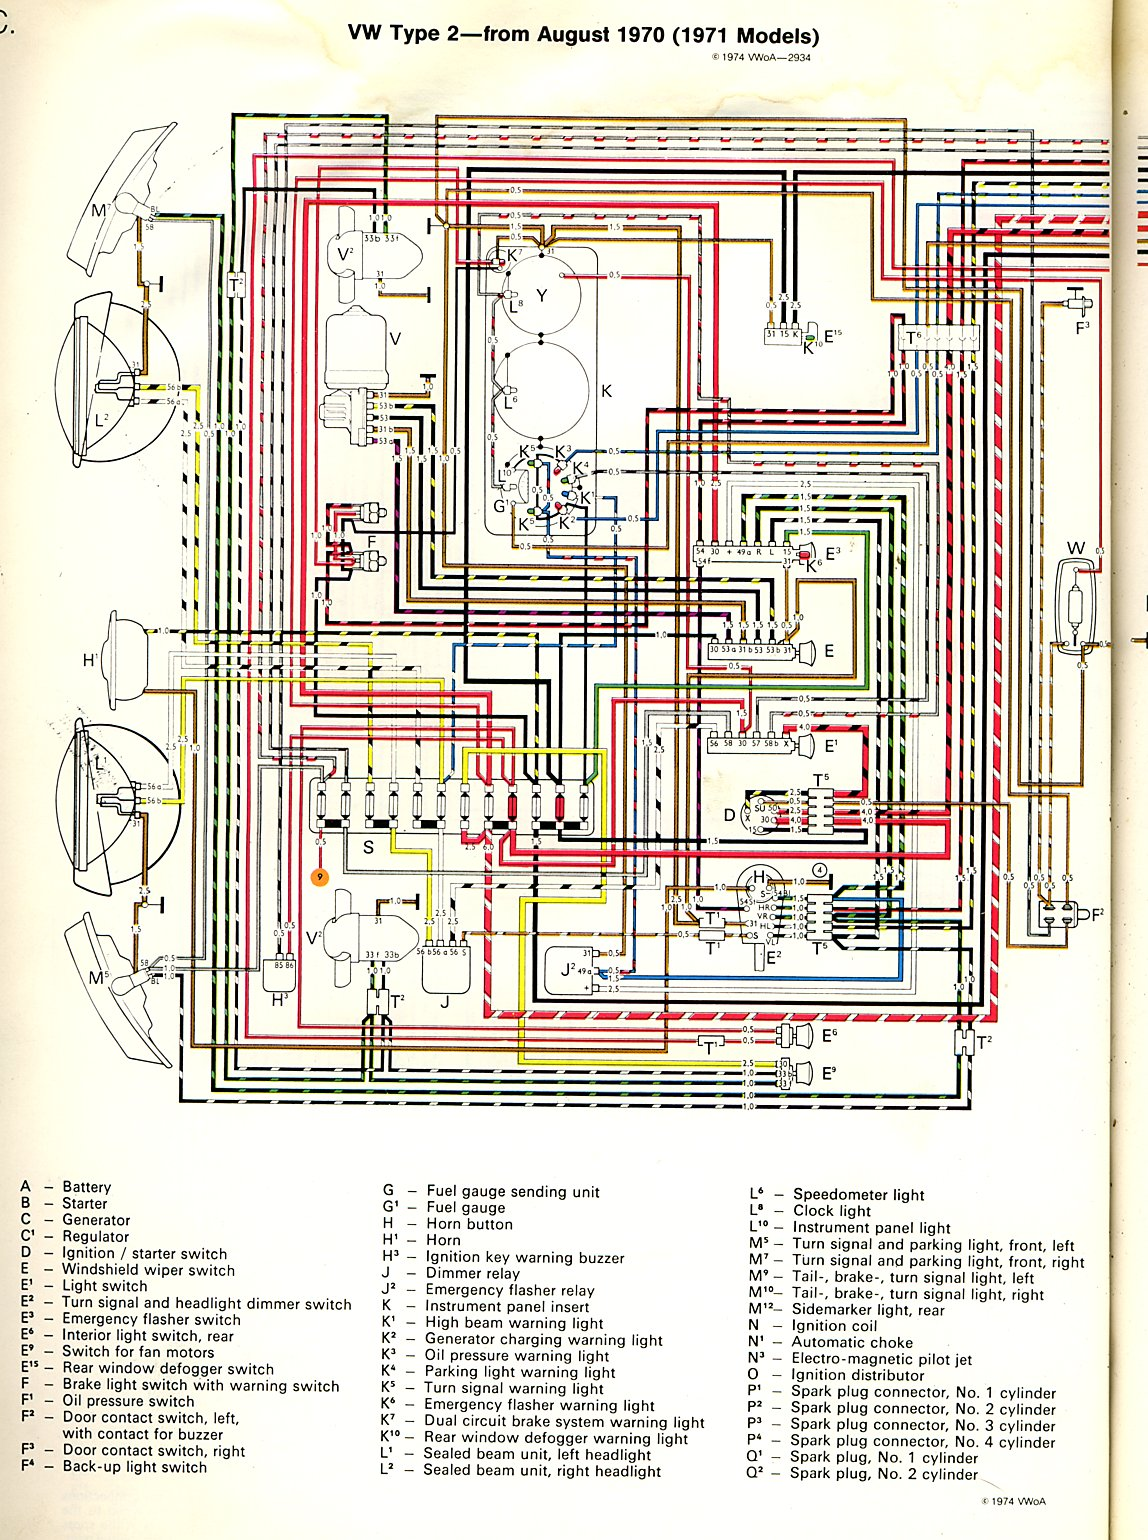 1969 Volkswagen Bus Wiring Schematic Diagram 69 Vw Engine Thesamba Com Type 2 Diagrams Van